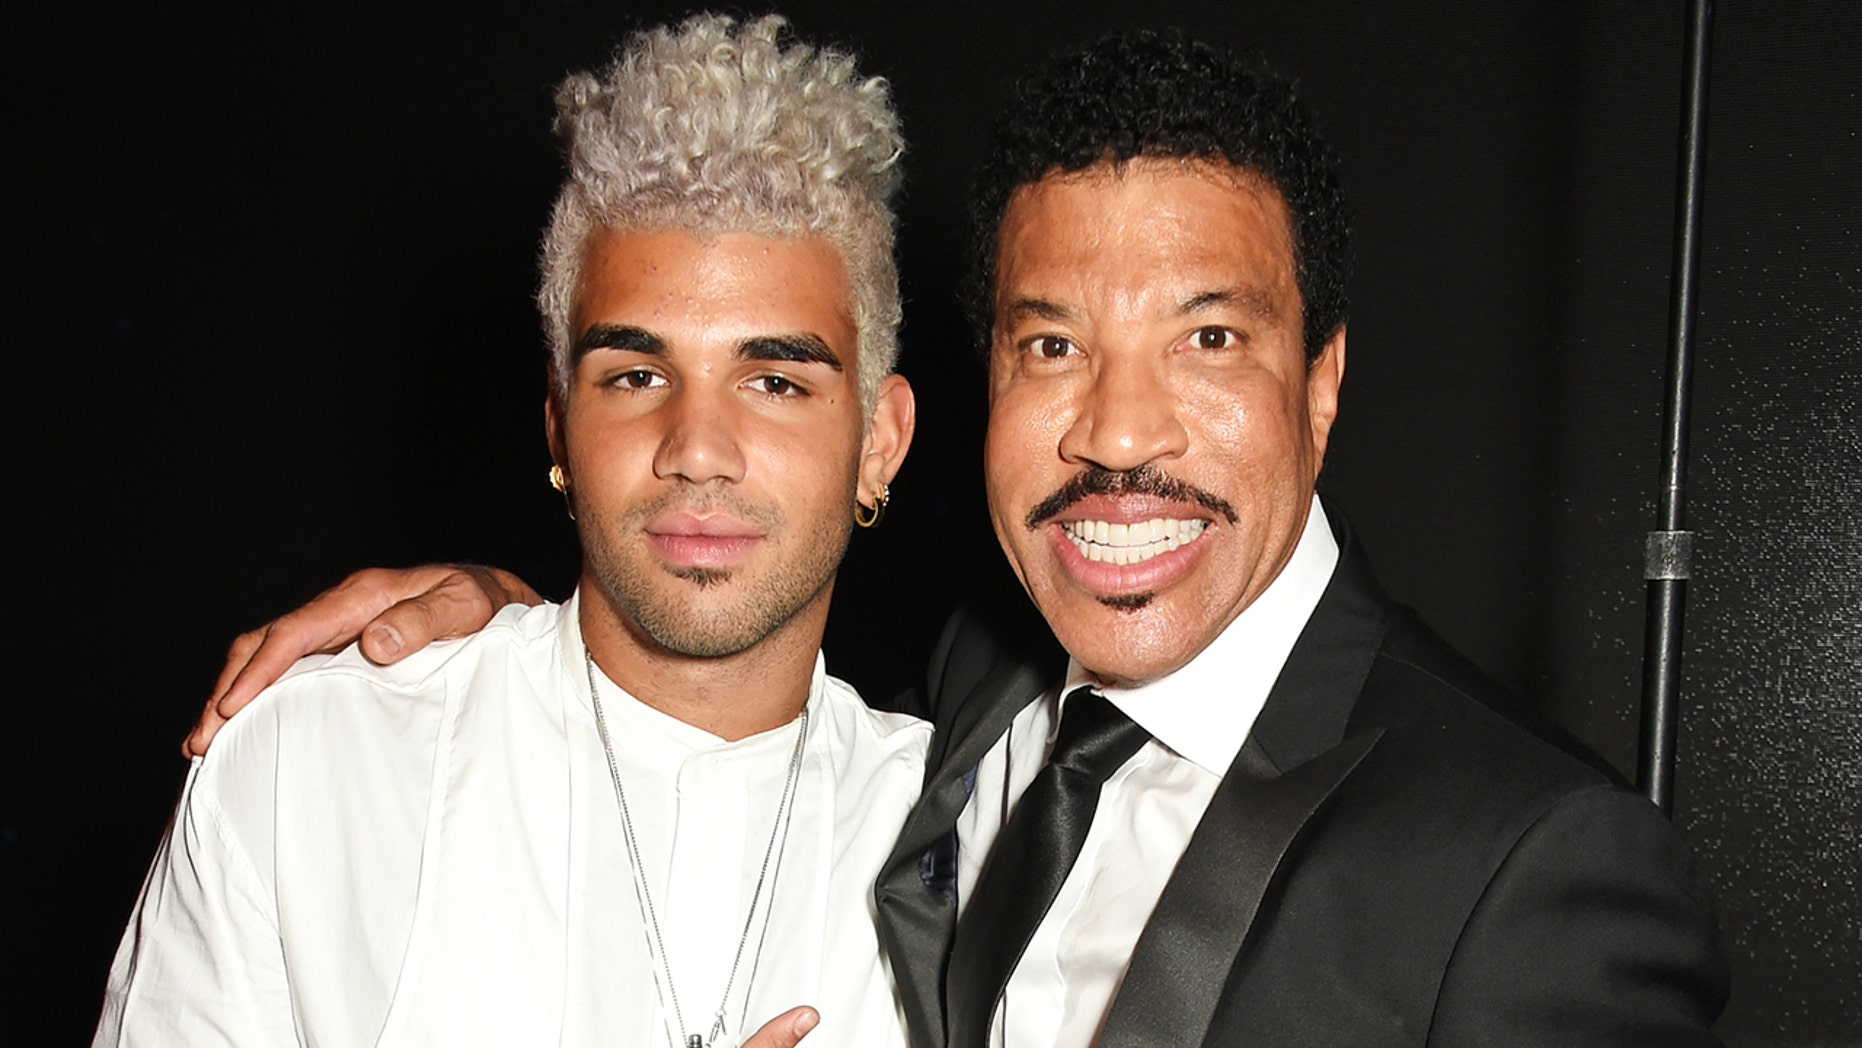 Lionel Richie's son, Miles, was reportedly involved in an incident at a London airport.